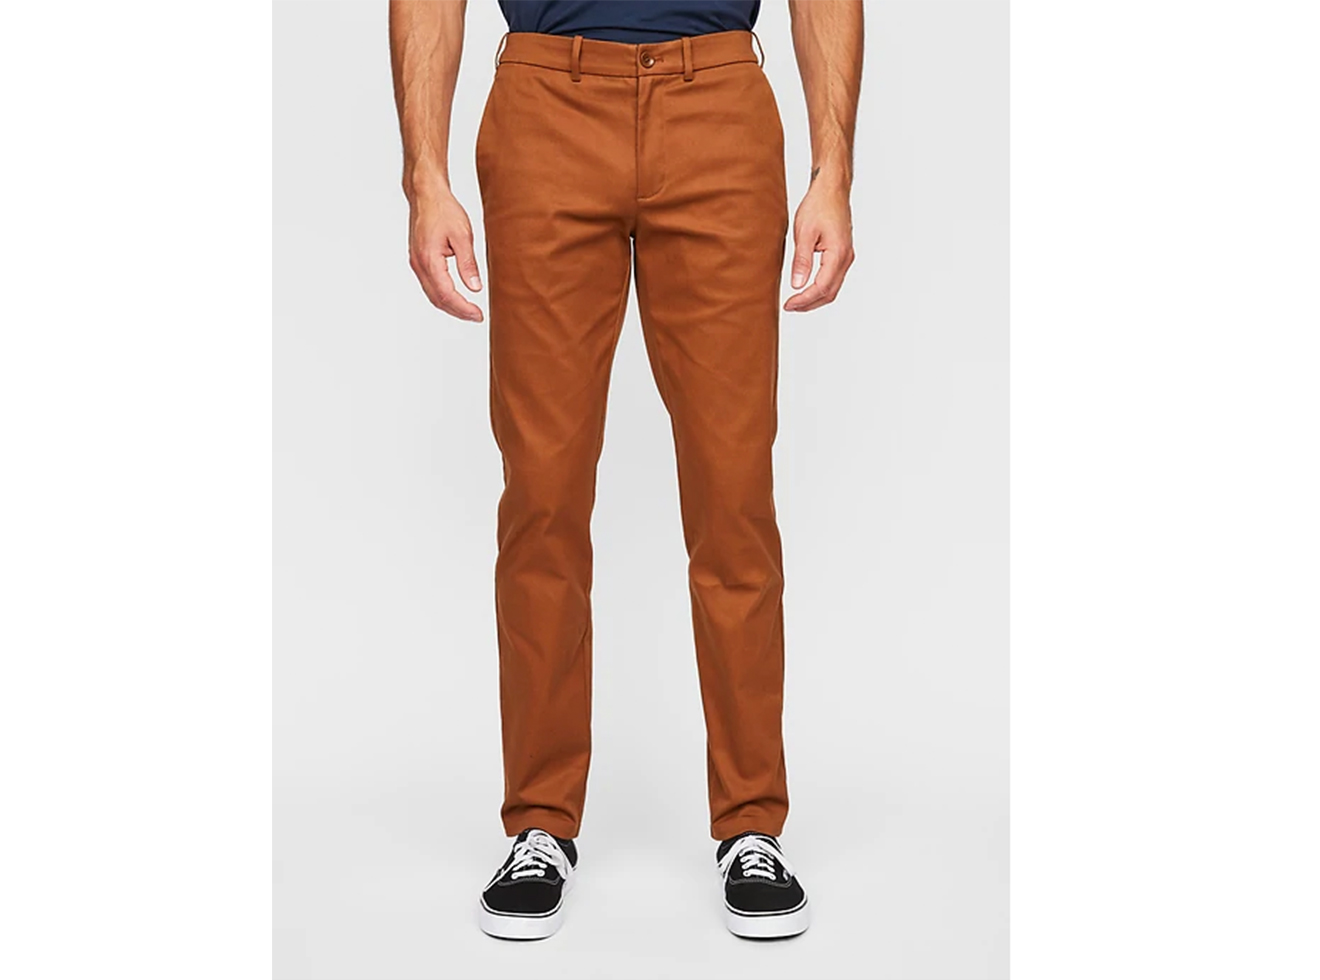 Hill City Everyday Pant in Slim Fit